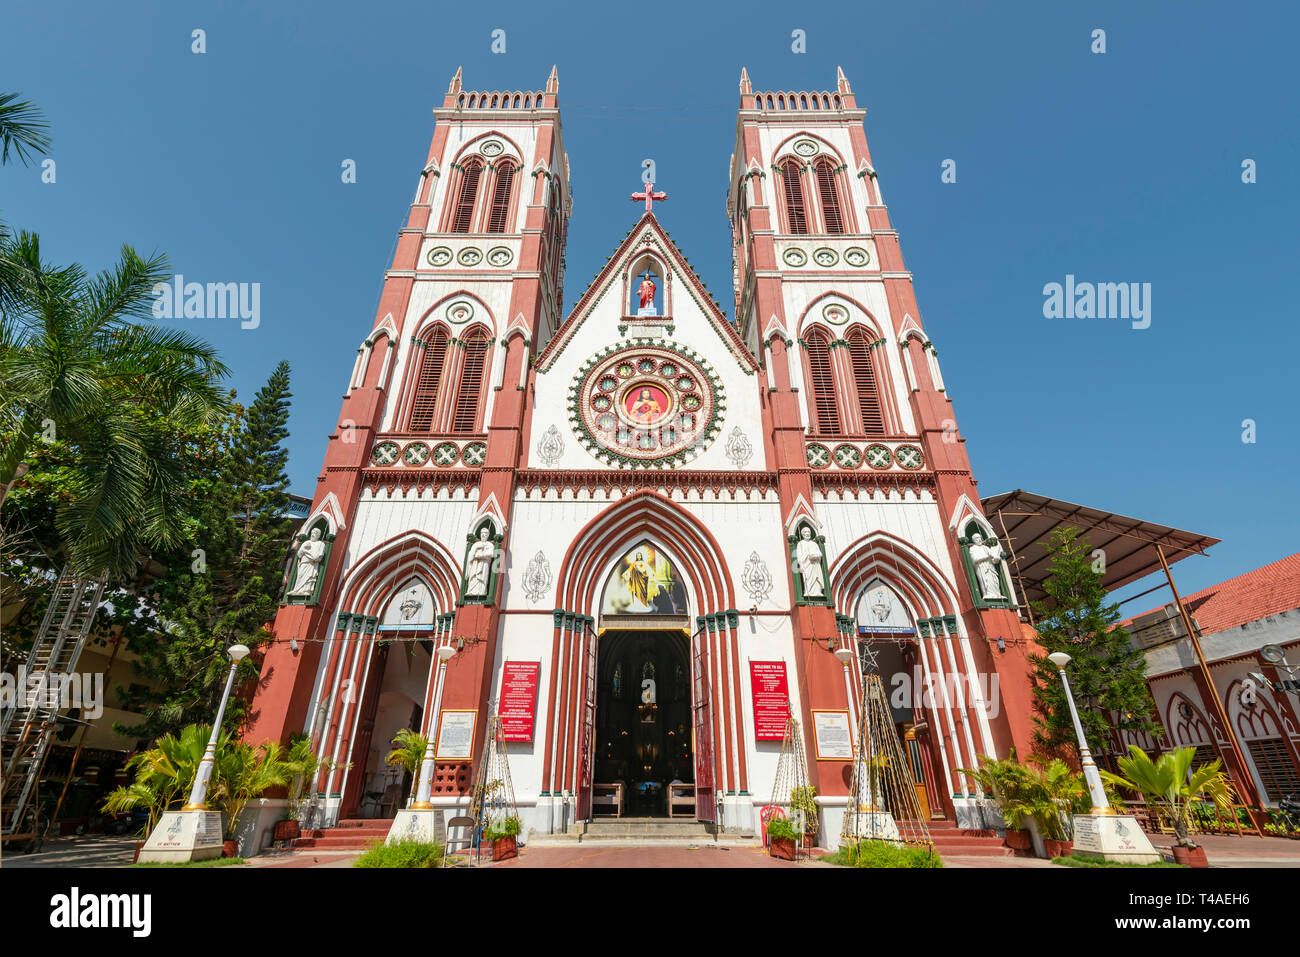 Horizontal view of the Sacred Heart Basilica in Pondicherry, India. - Stock Image